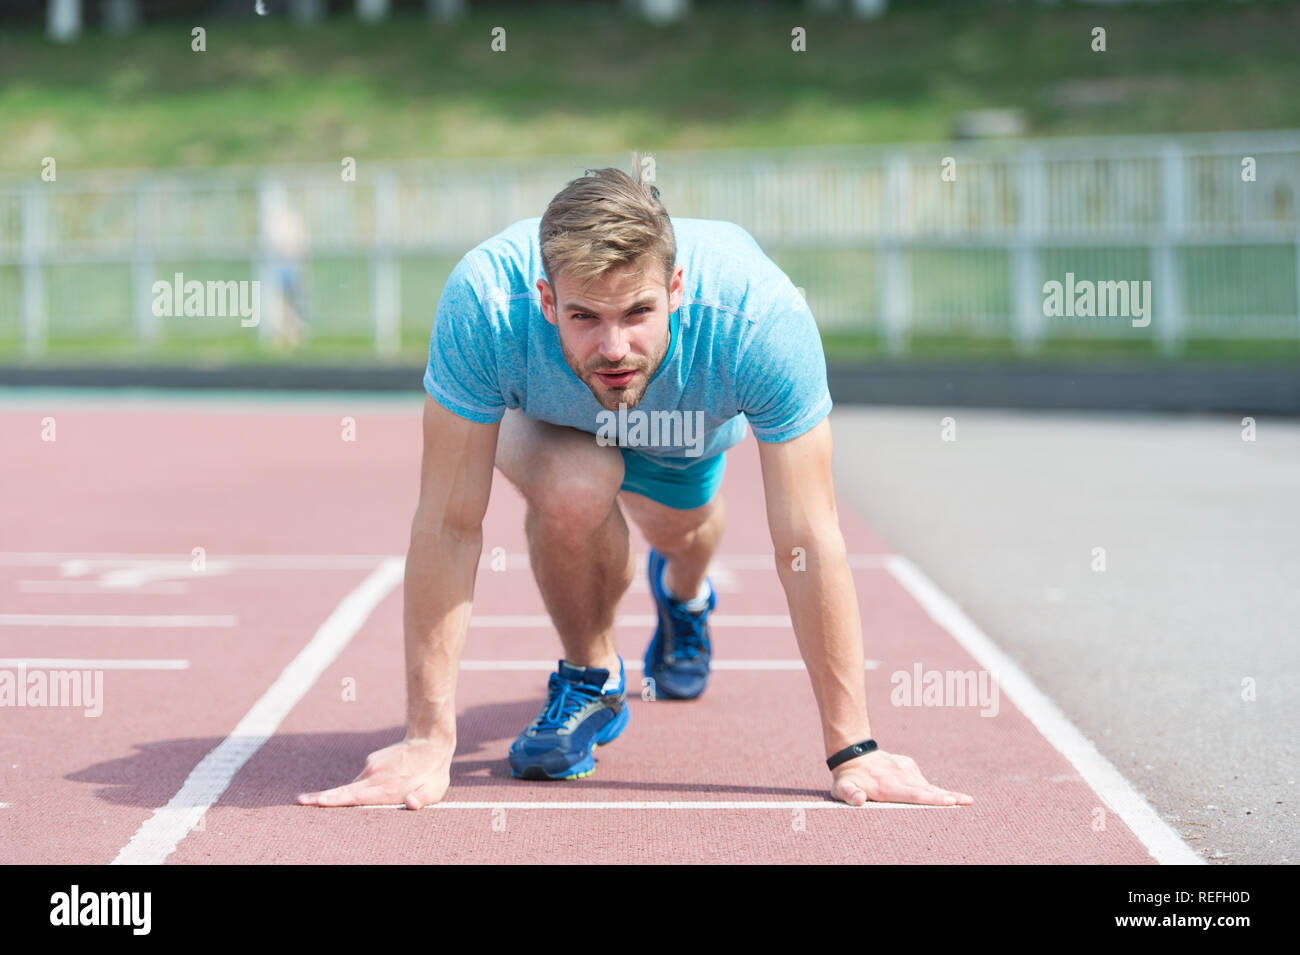 Man runner on start position at stadium. Runner in start pose on running surface. Man run outdoor at running track. Sport and athletics concept. Sportsman on concentrated face ready to go. Stock Photo